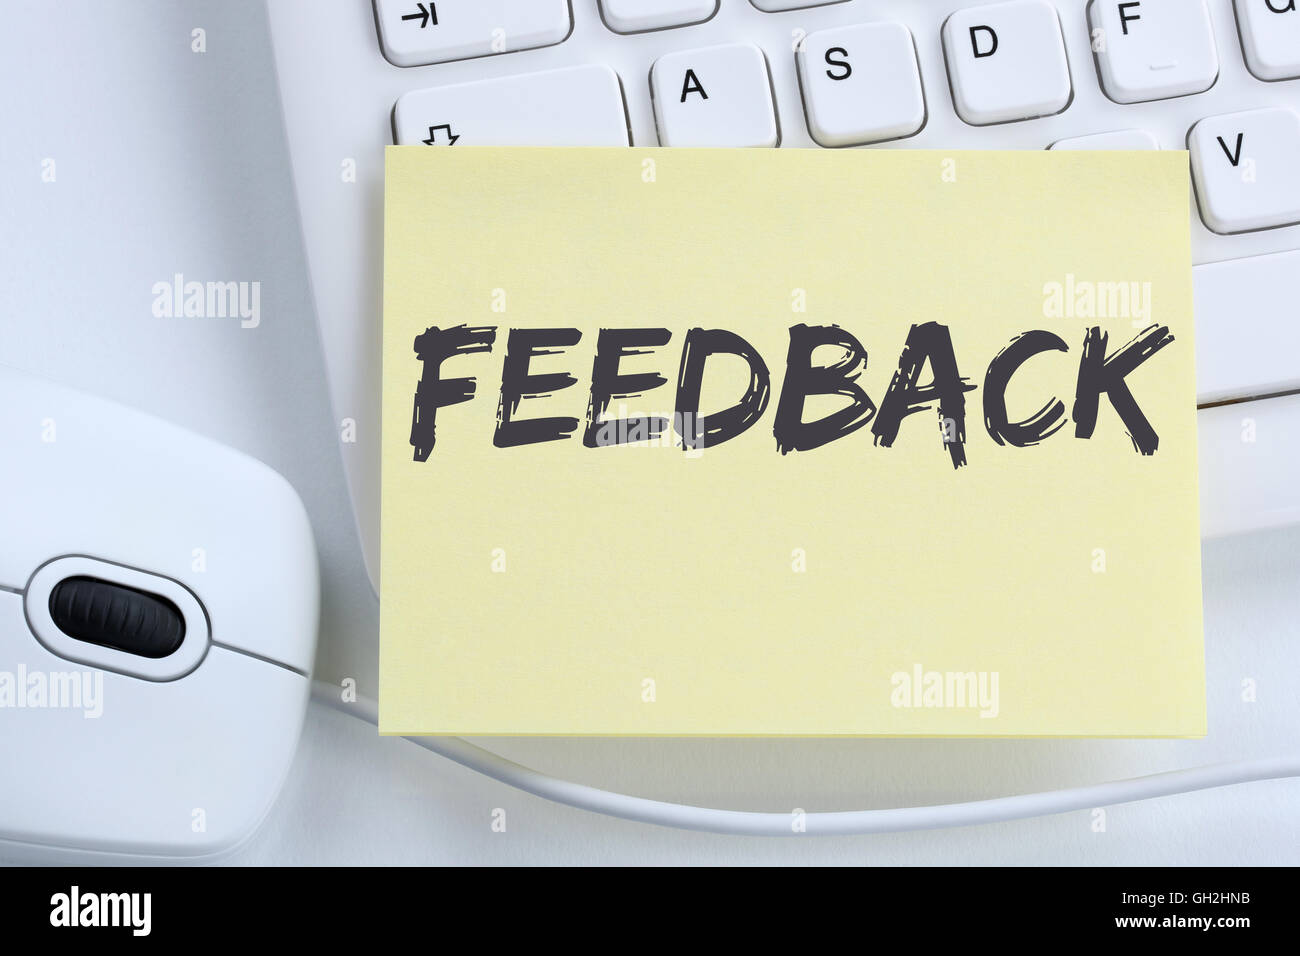 Feedback contact customer service opinion survey business concept review office computer keyboard - Stock Image